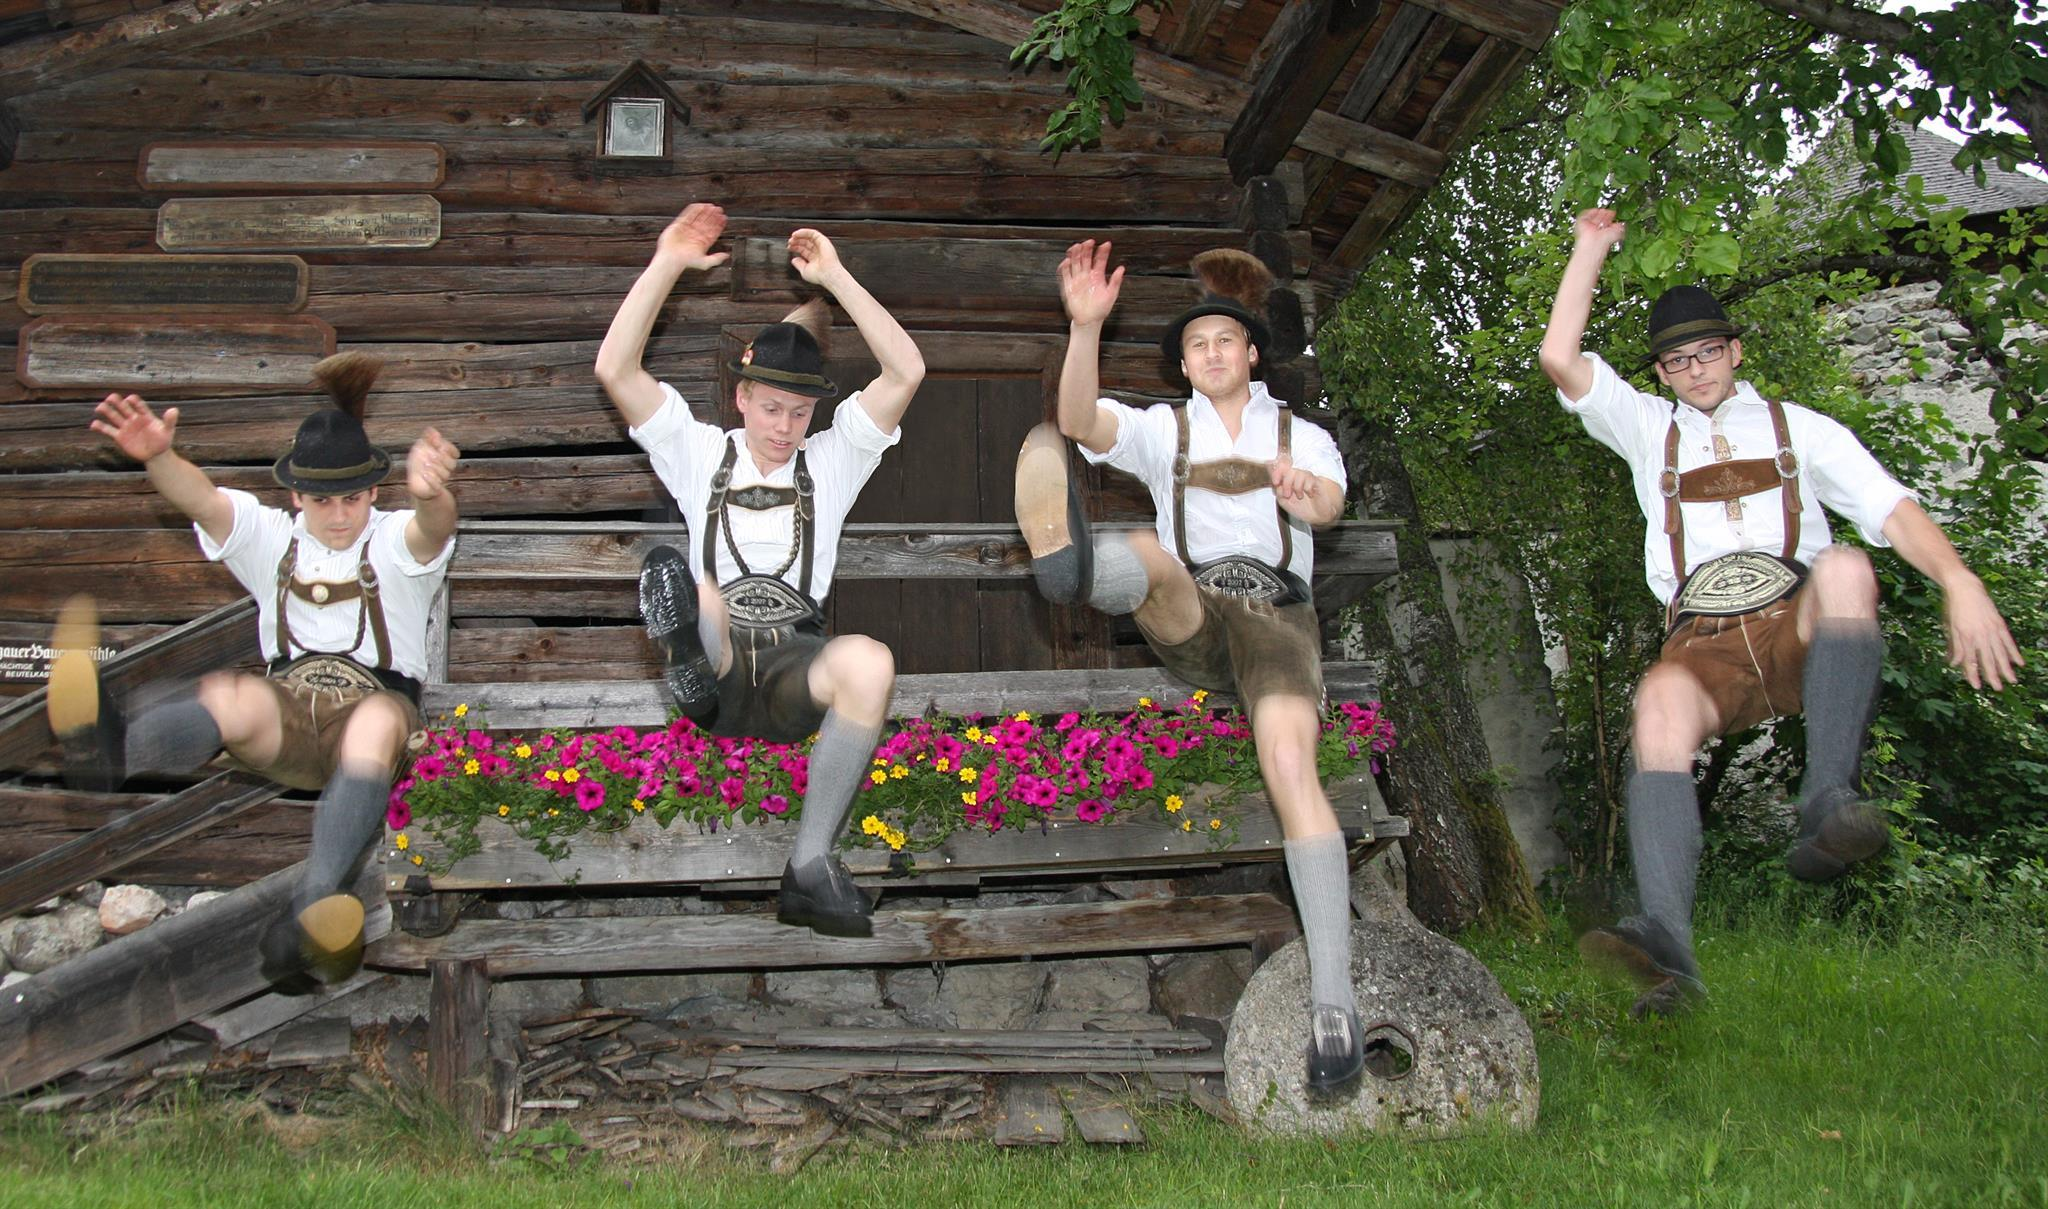 Traditional evening at the castle Kaprun - 25/08/2020, from 8:00 PM